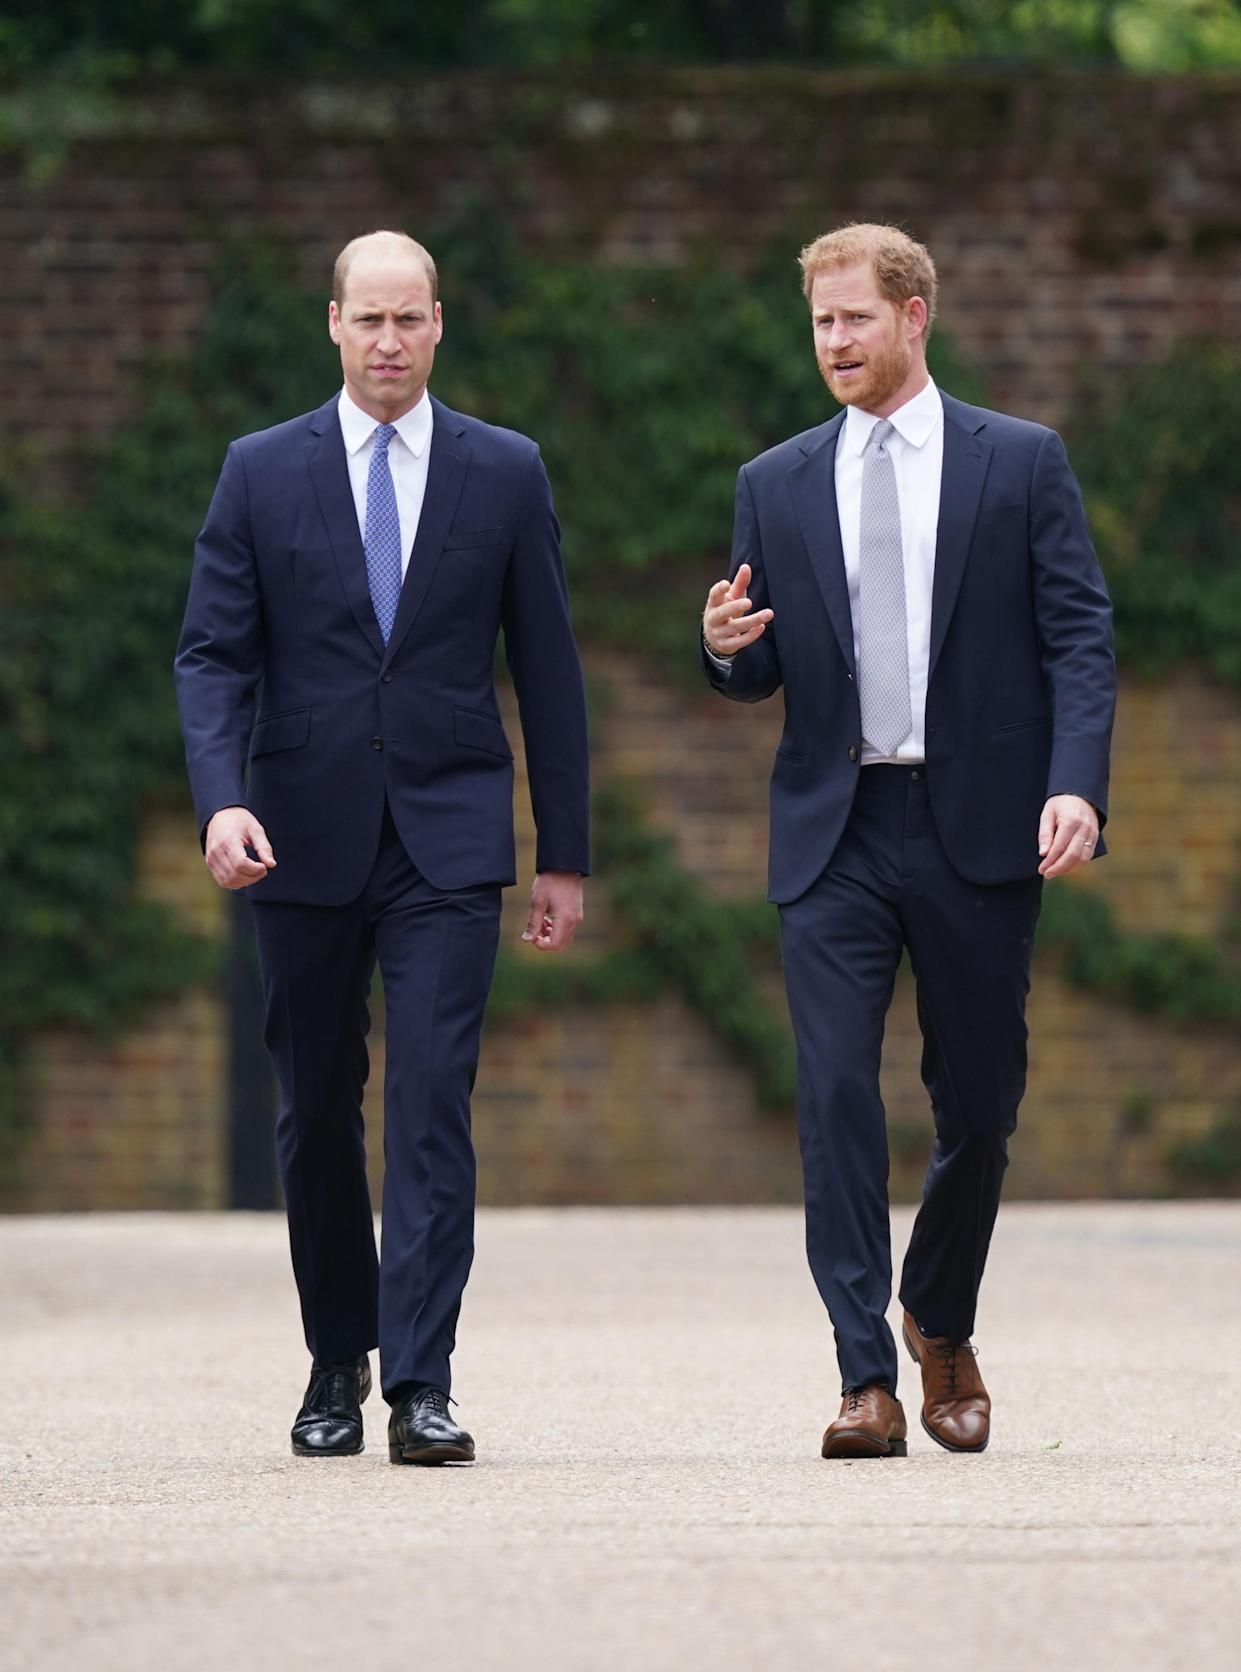 The Duke of Cambridge and Duke of Sussex were in conversation as they walked together to the garden. (Photo: PA Images)